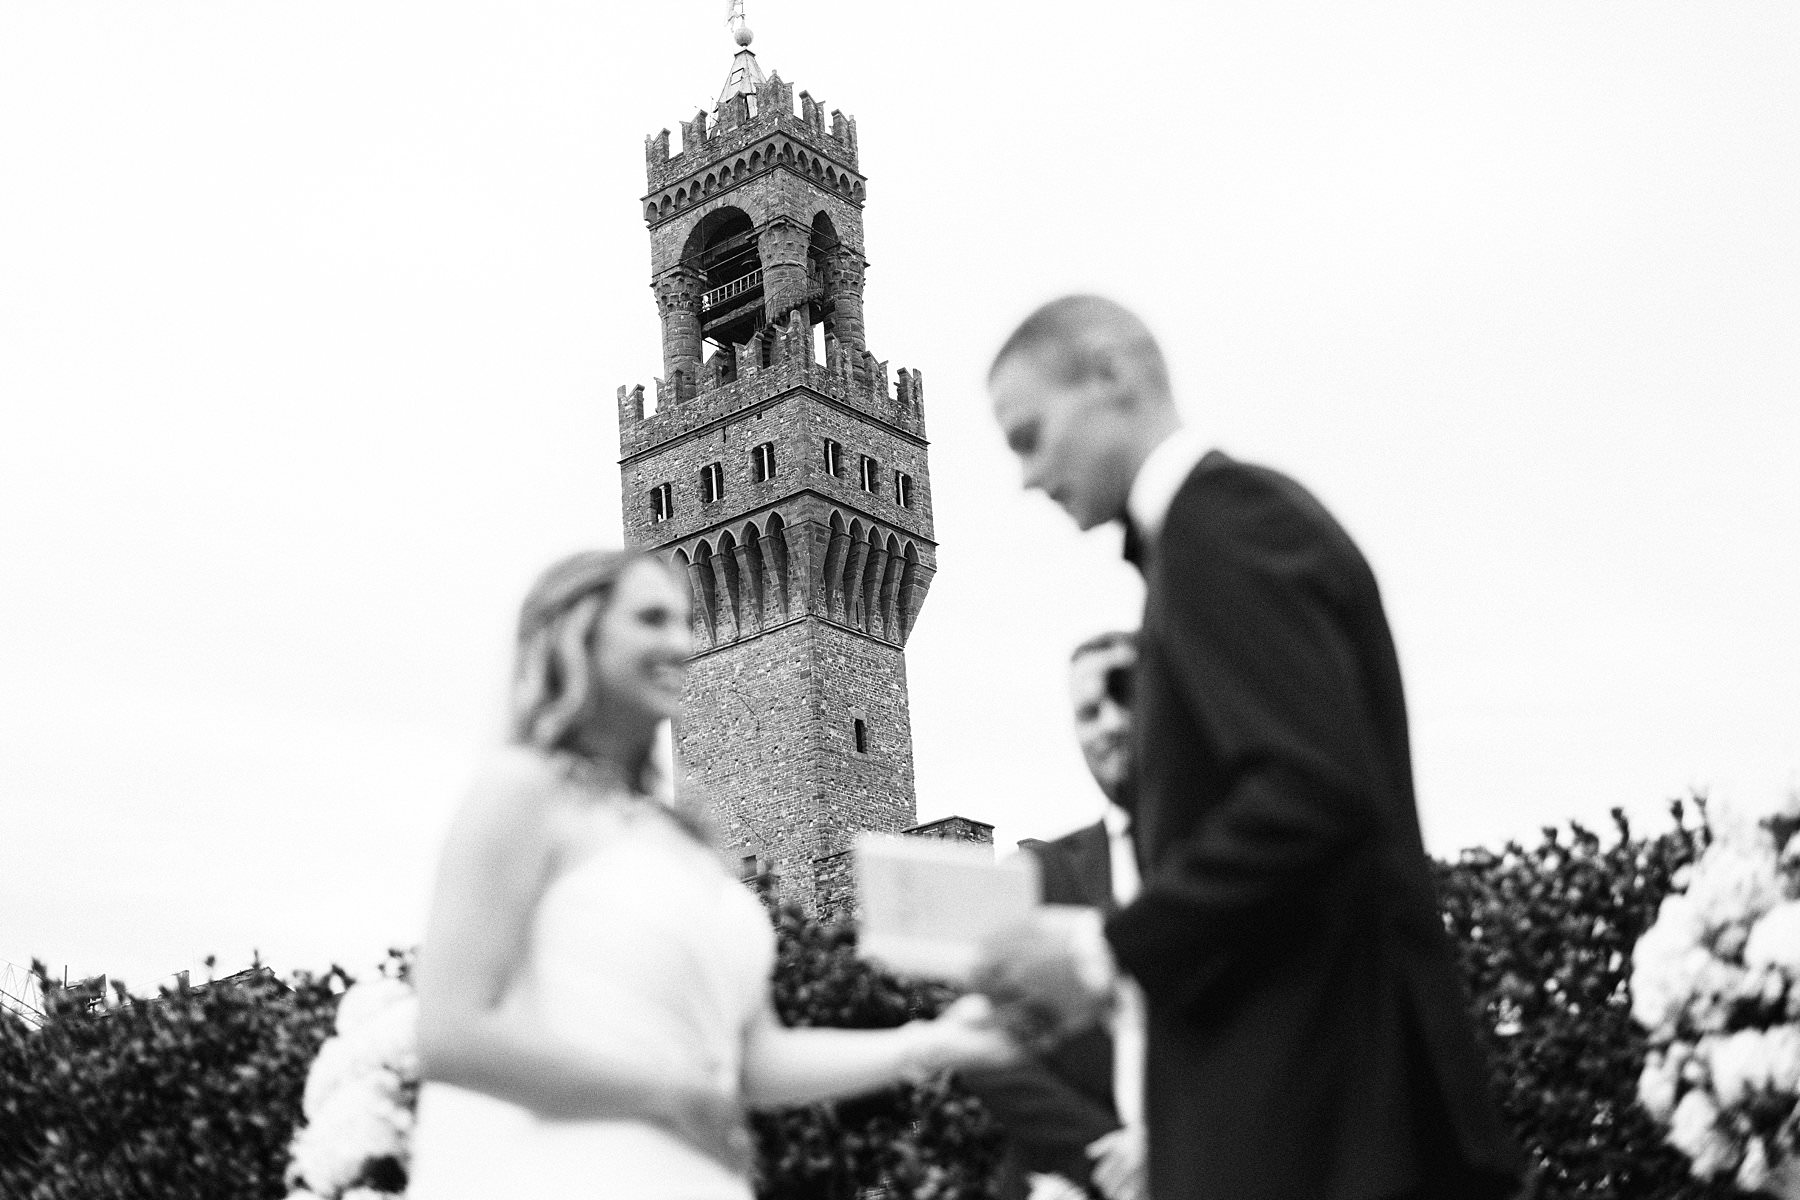 Beth and Evan's exquisite wedding: just like a dream. Lovely intimate exclusive wedding ceremony at the breathtaking top terrace of Palazzo Gondi which offers an incredible view of the Duomo and Palazzo Vecchio